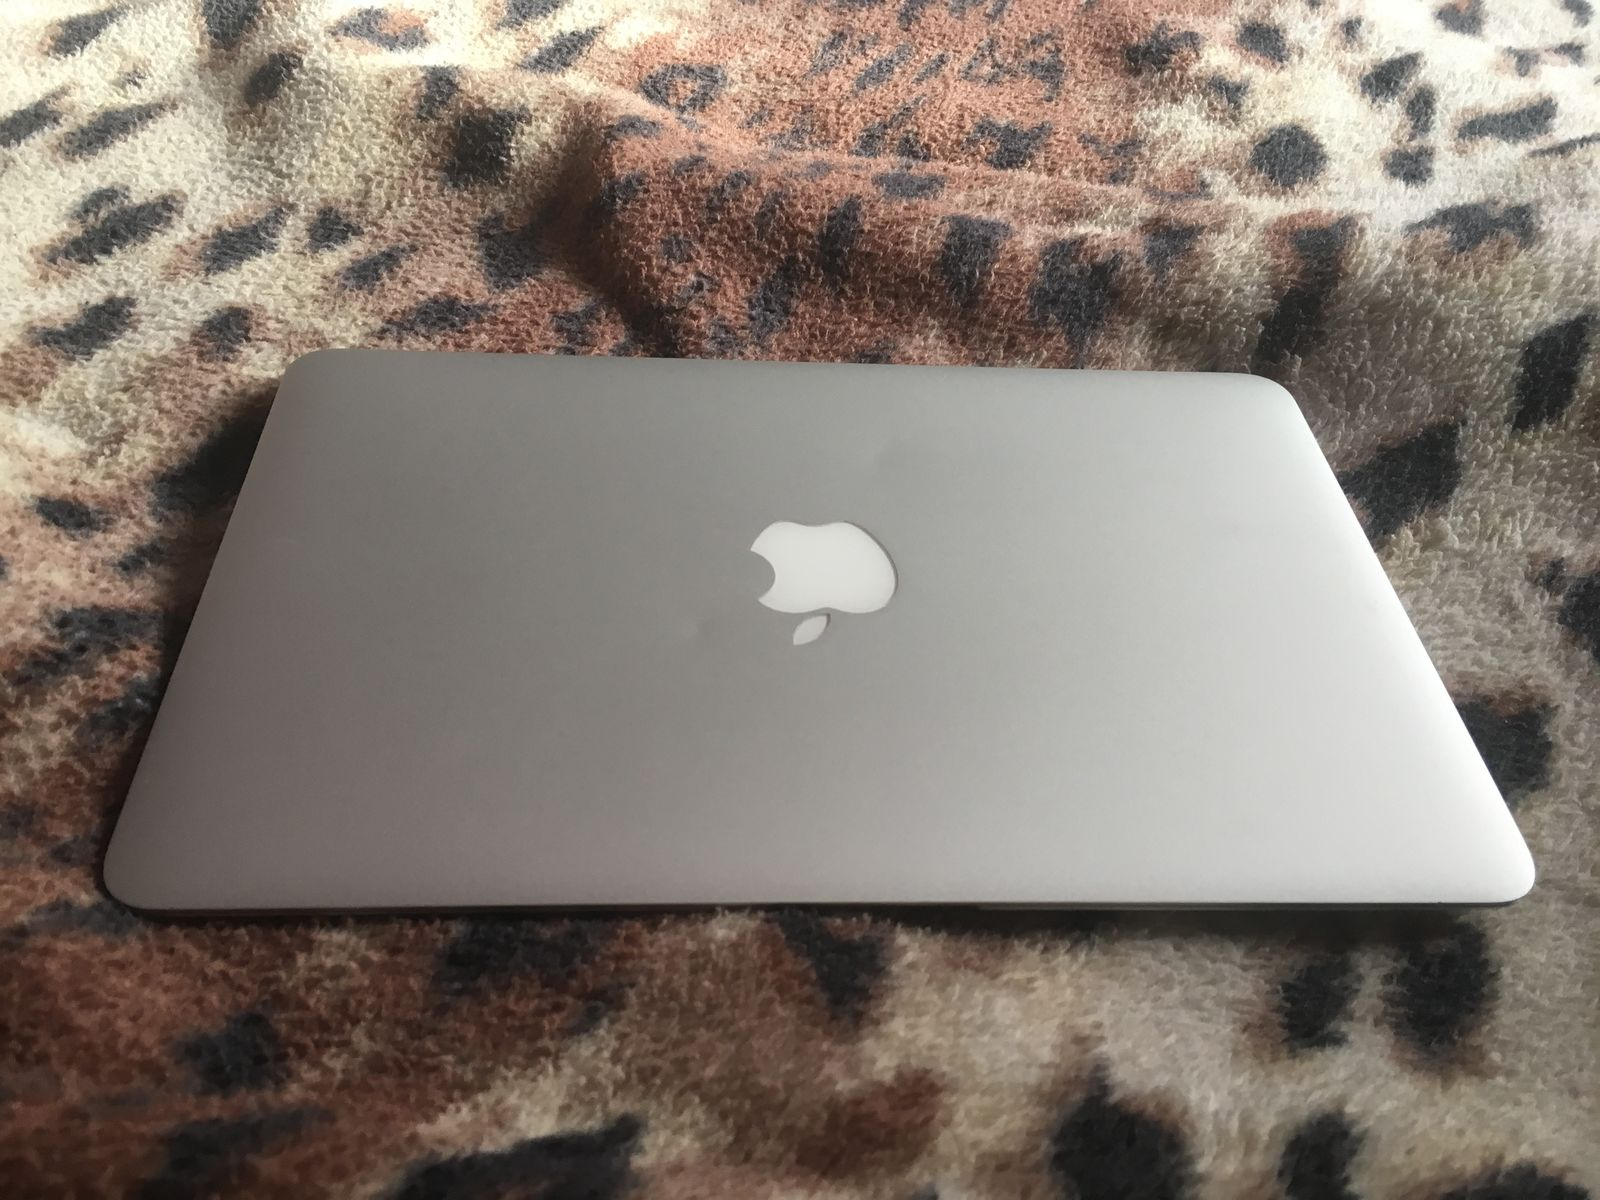 MacBook Air (11-inch, Mid 2012) Сore i5/128SSD/8gb/intel4000